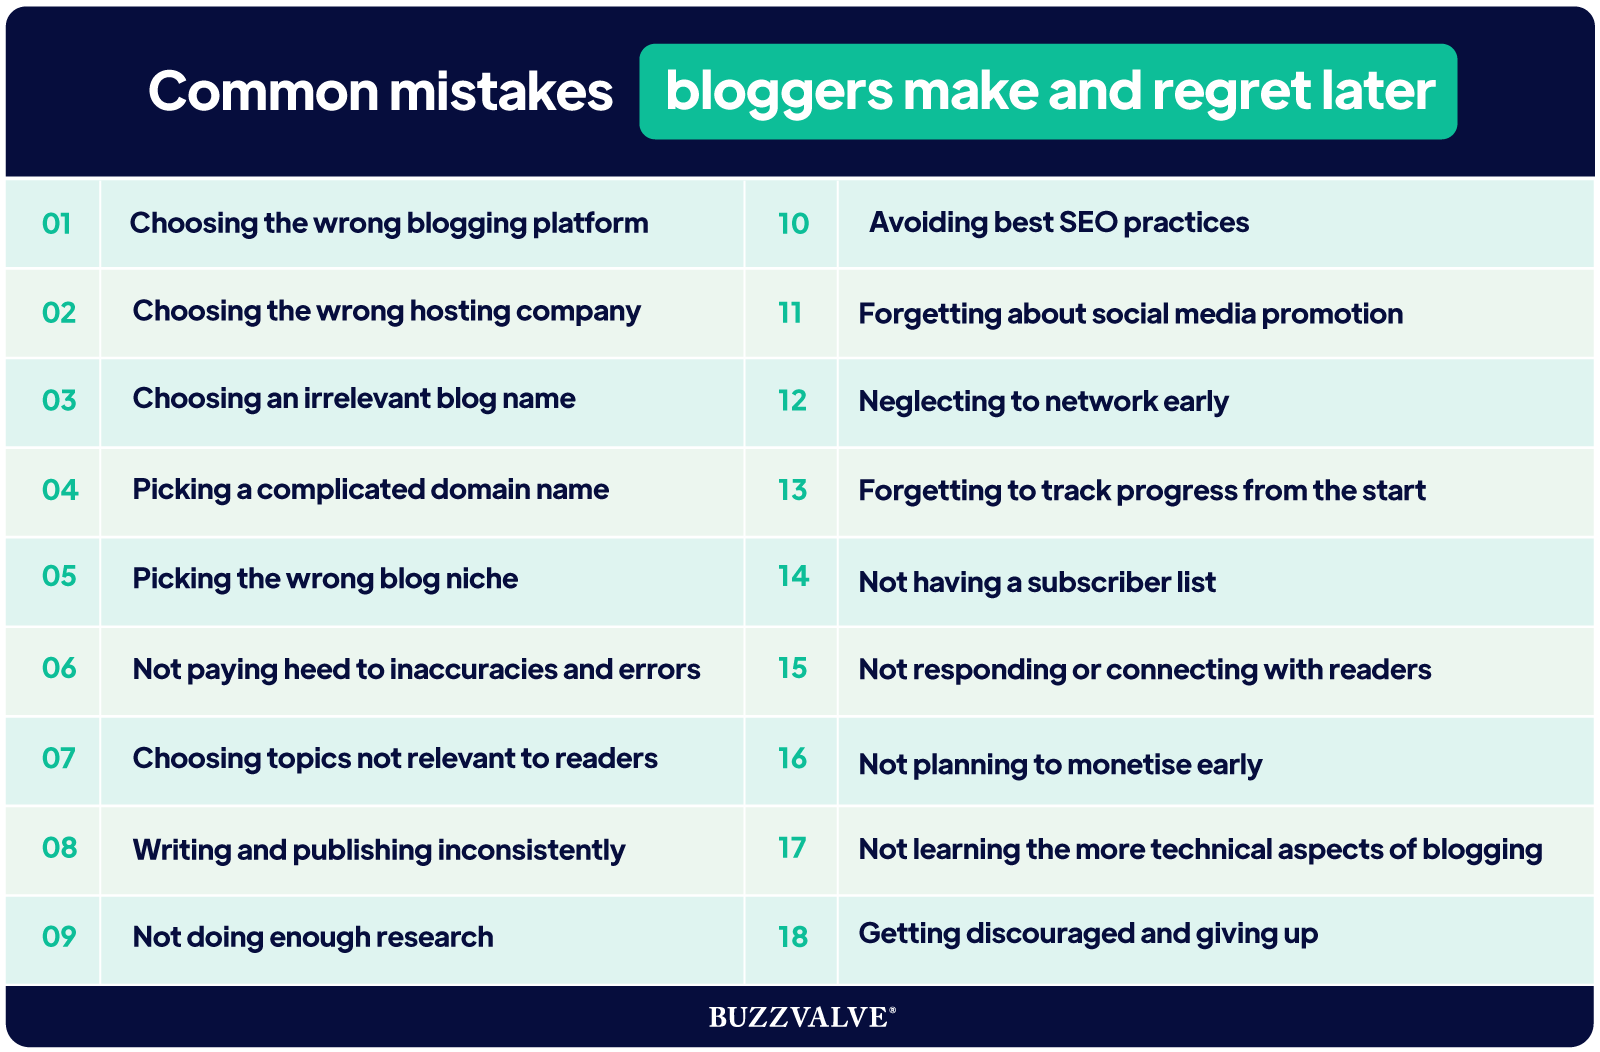 Common mistakes bloggers make and regret later